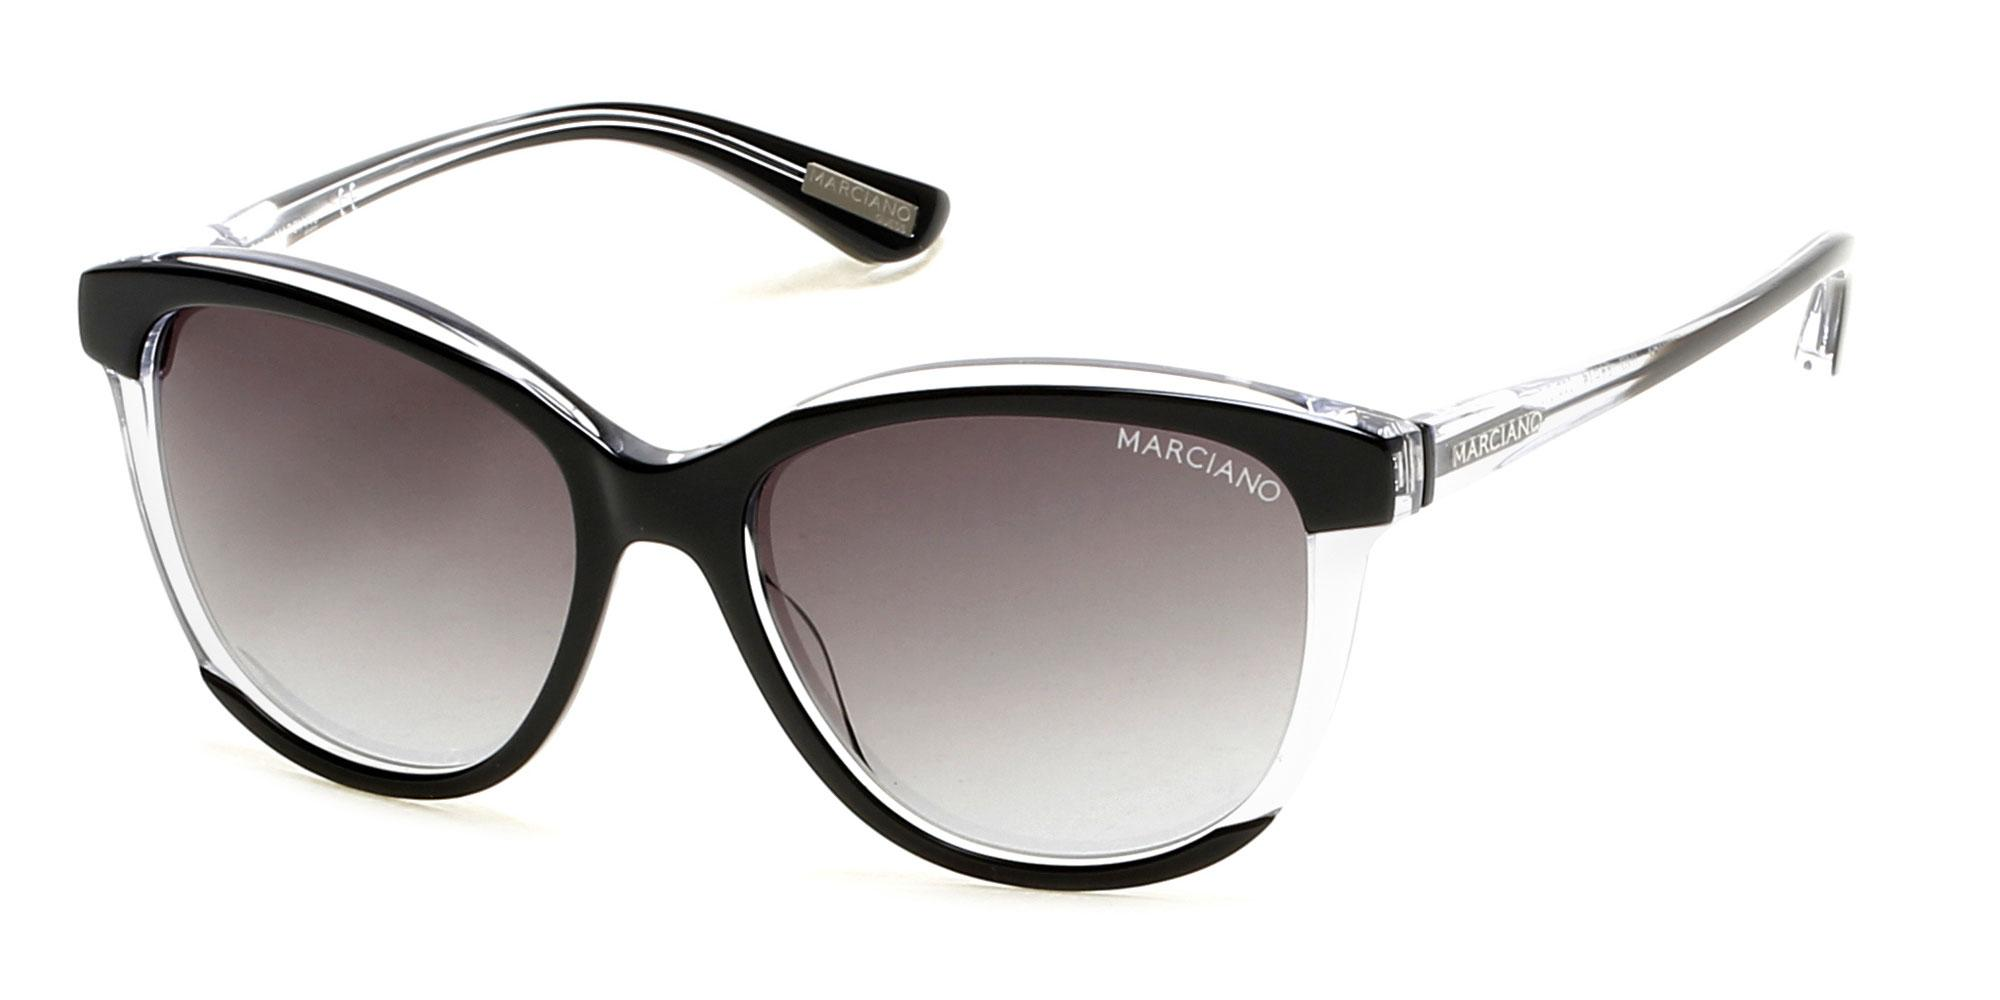 03B GM 0757 Sunglasses, Guess by Marciano